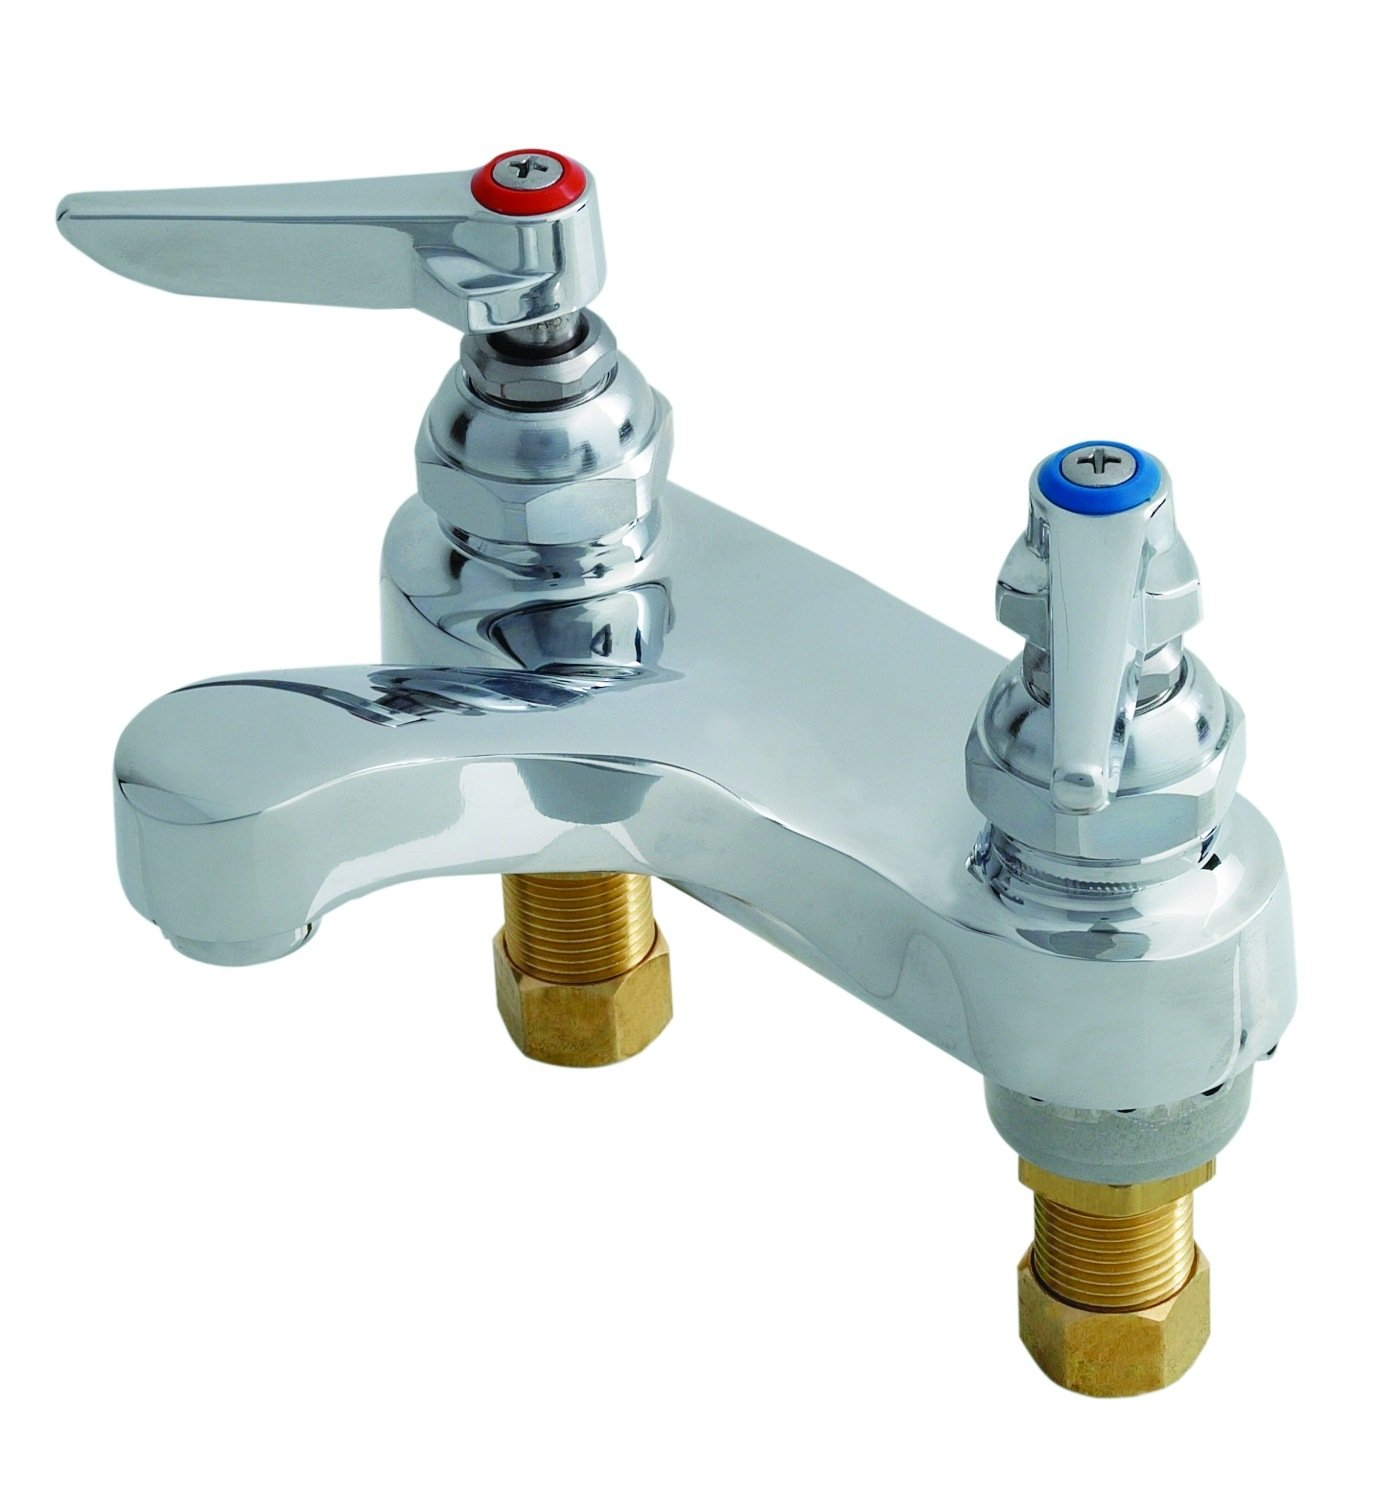 T&S Brass B-0871-CR Centerset Mixing Faucet with Ceramic Cartridges and B-0199-03 Male Aerator